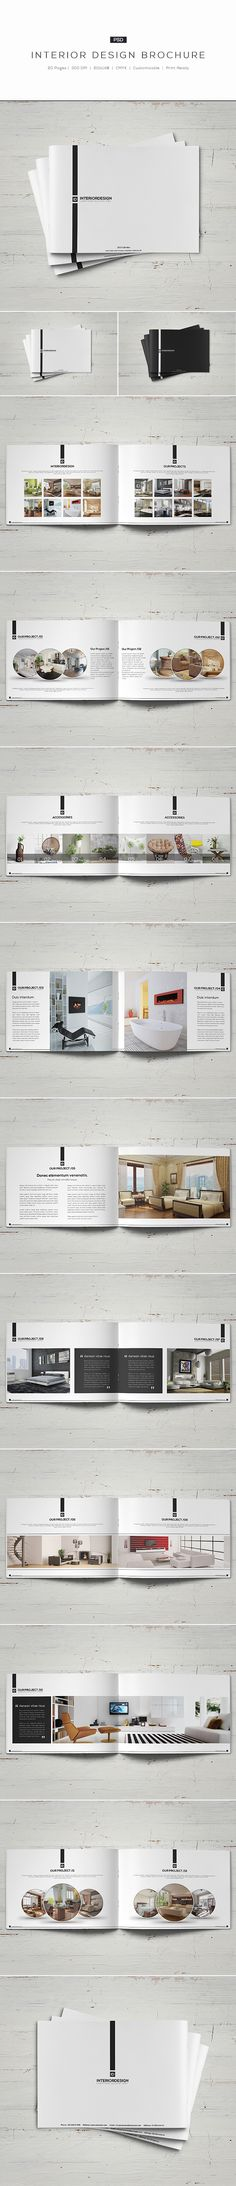 Interior Design Brochure2 Different Colors:- White- BlackDetails:- 20 pages- Easy to modify- CMYK- 300 DPI- 210mm x 148mm- Print ready- Layered PSDFonts:fontfabric.com/nexa-free-fontgoogle.com/fonts/specimen/Open+Sansgoogle.com/font…